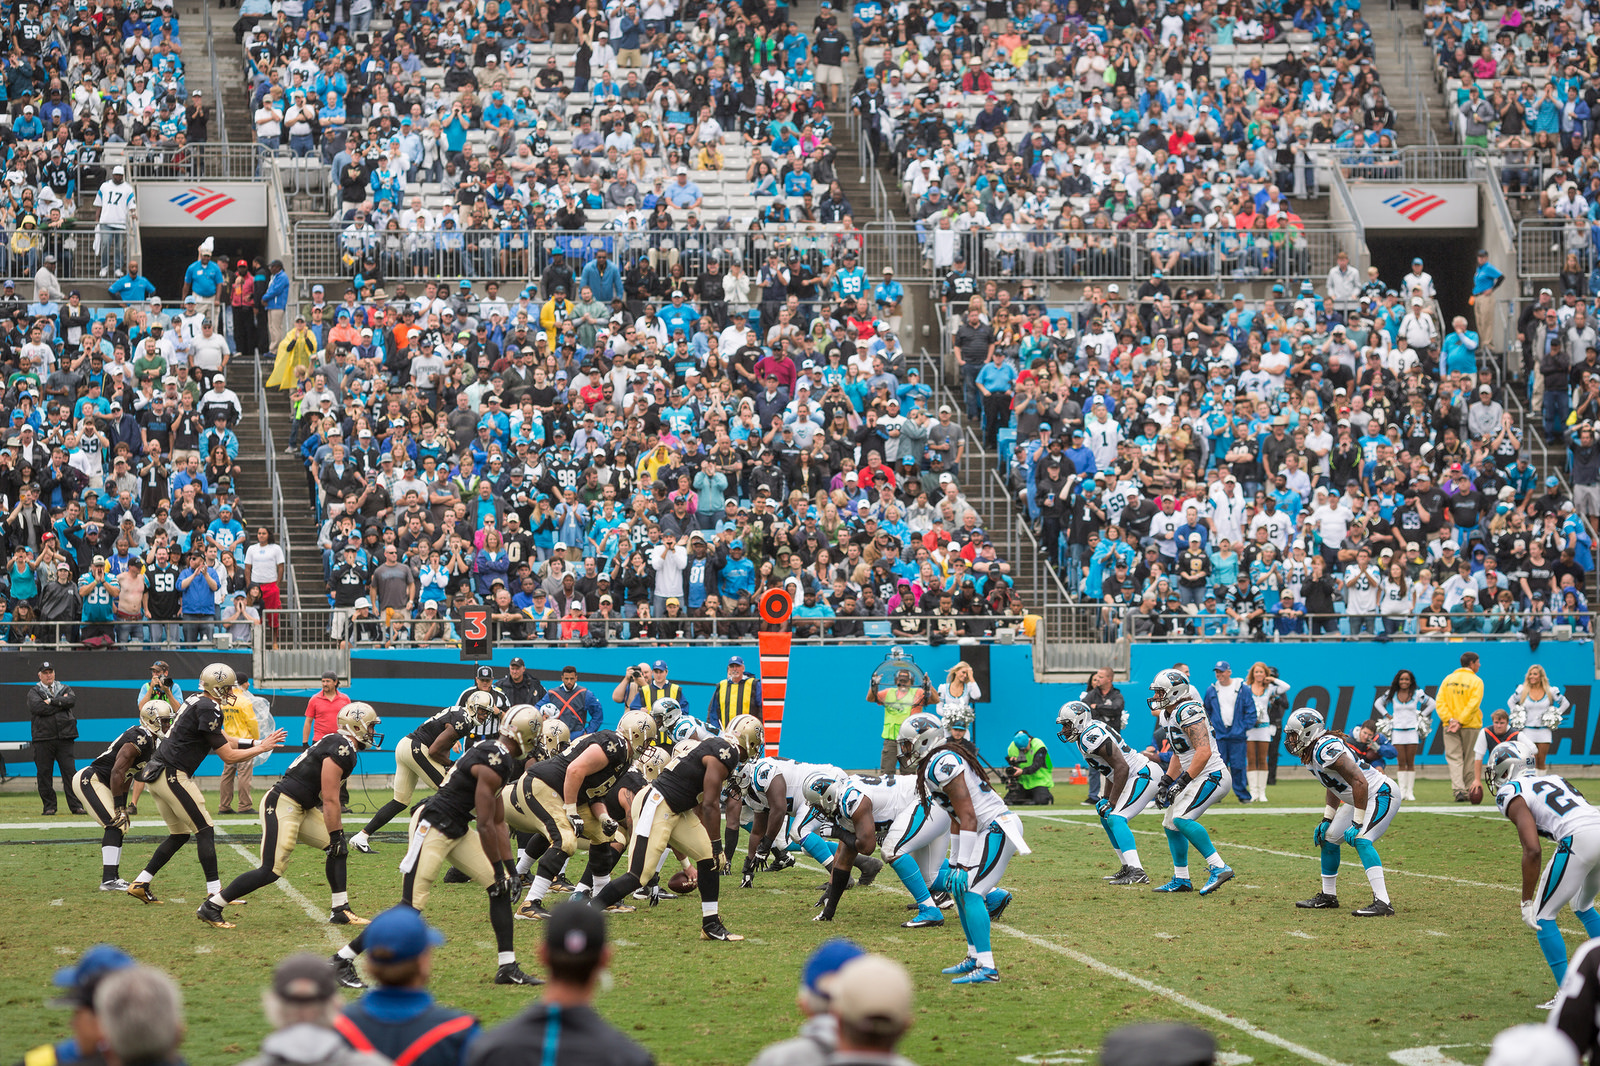 Carolina Panthers vs New Orleans Saints